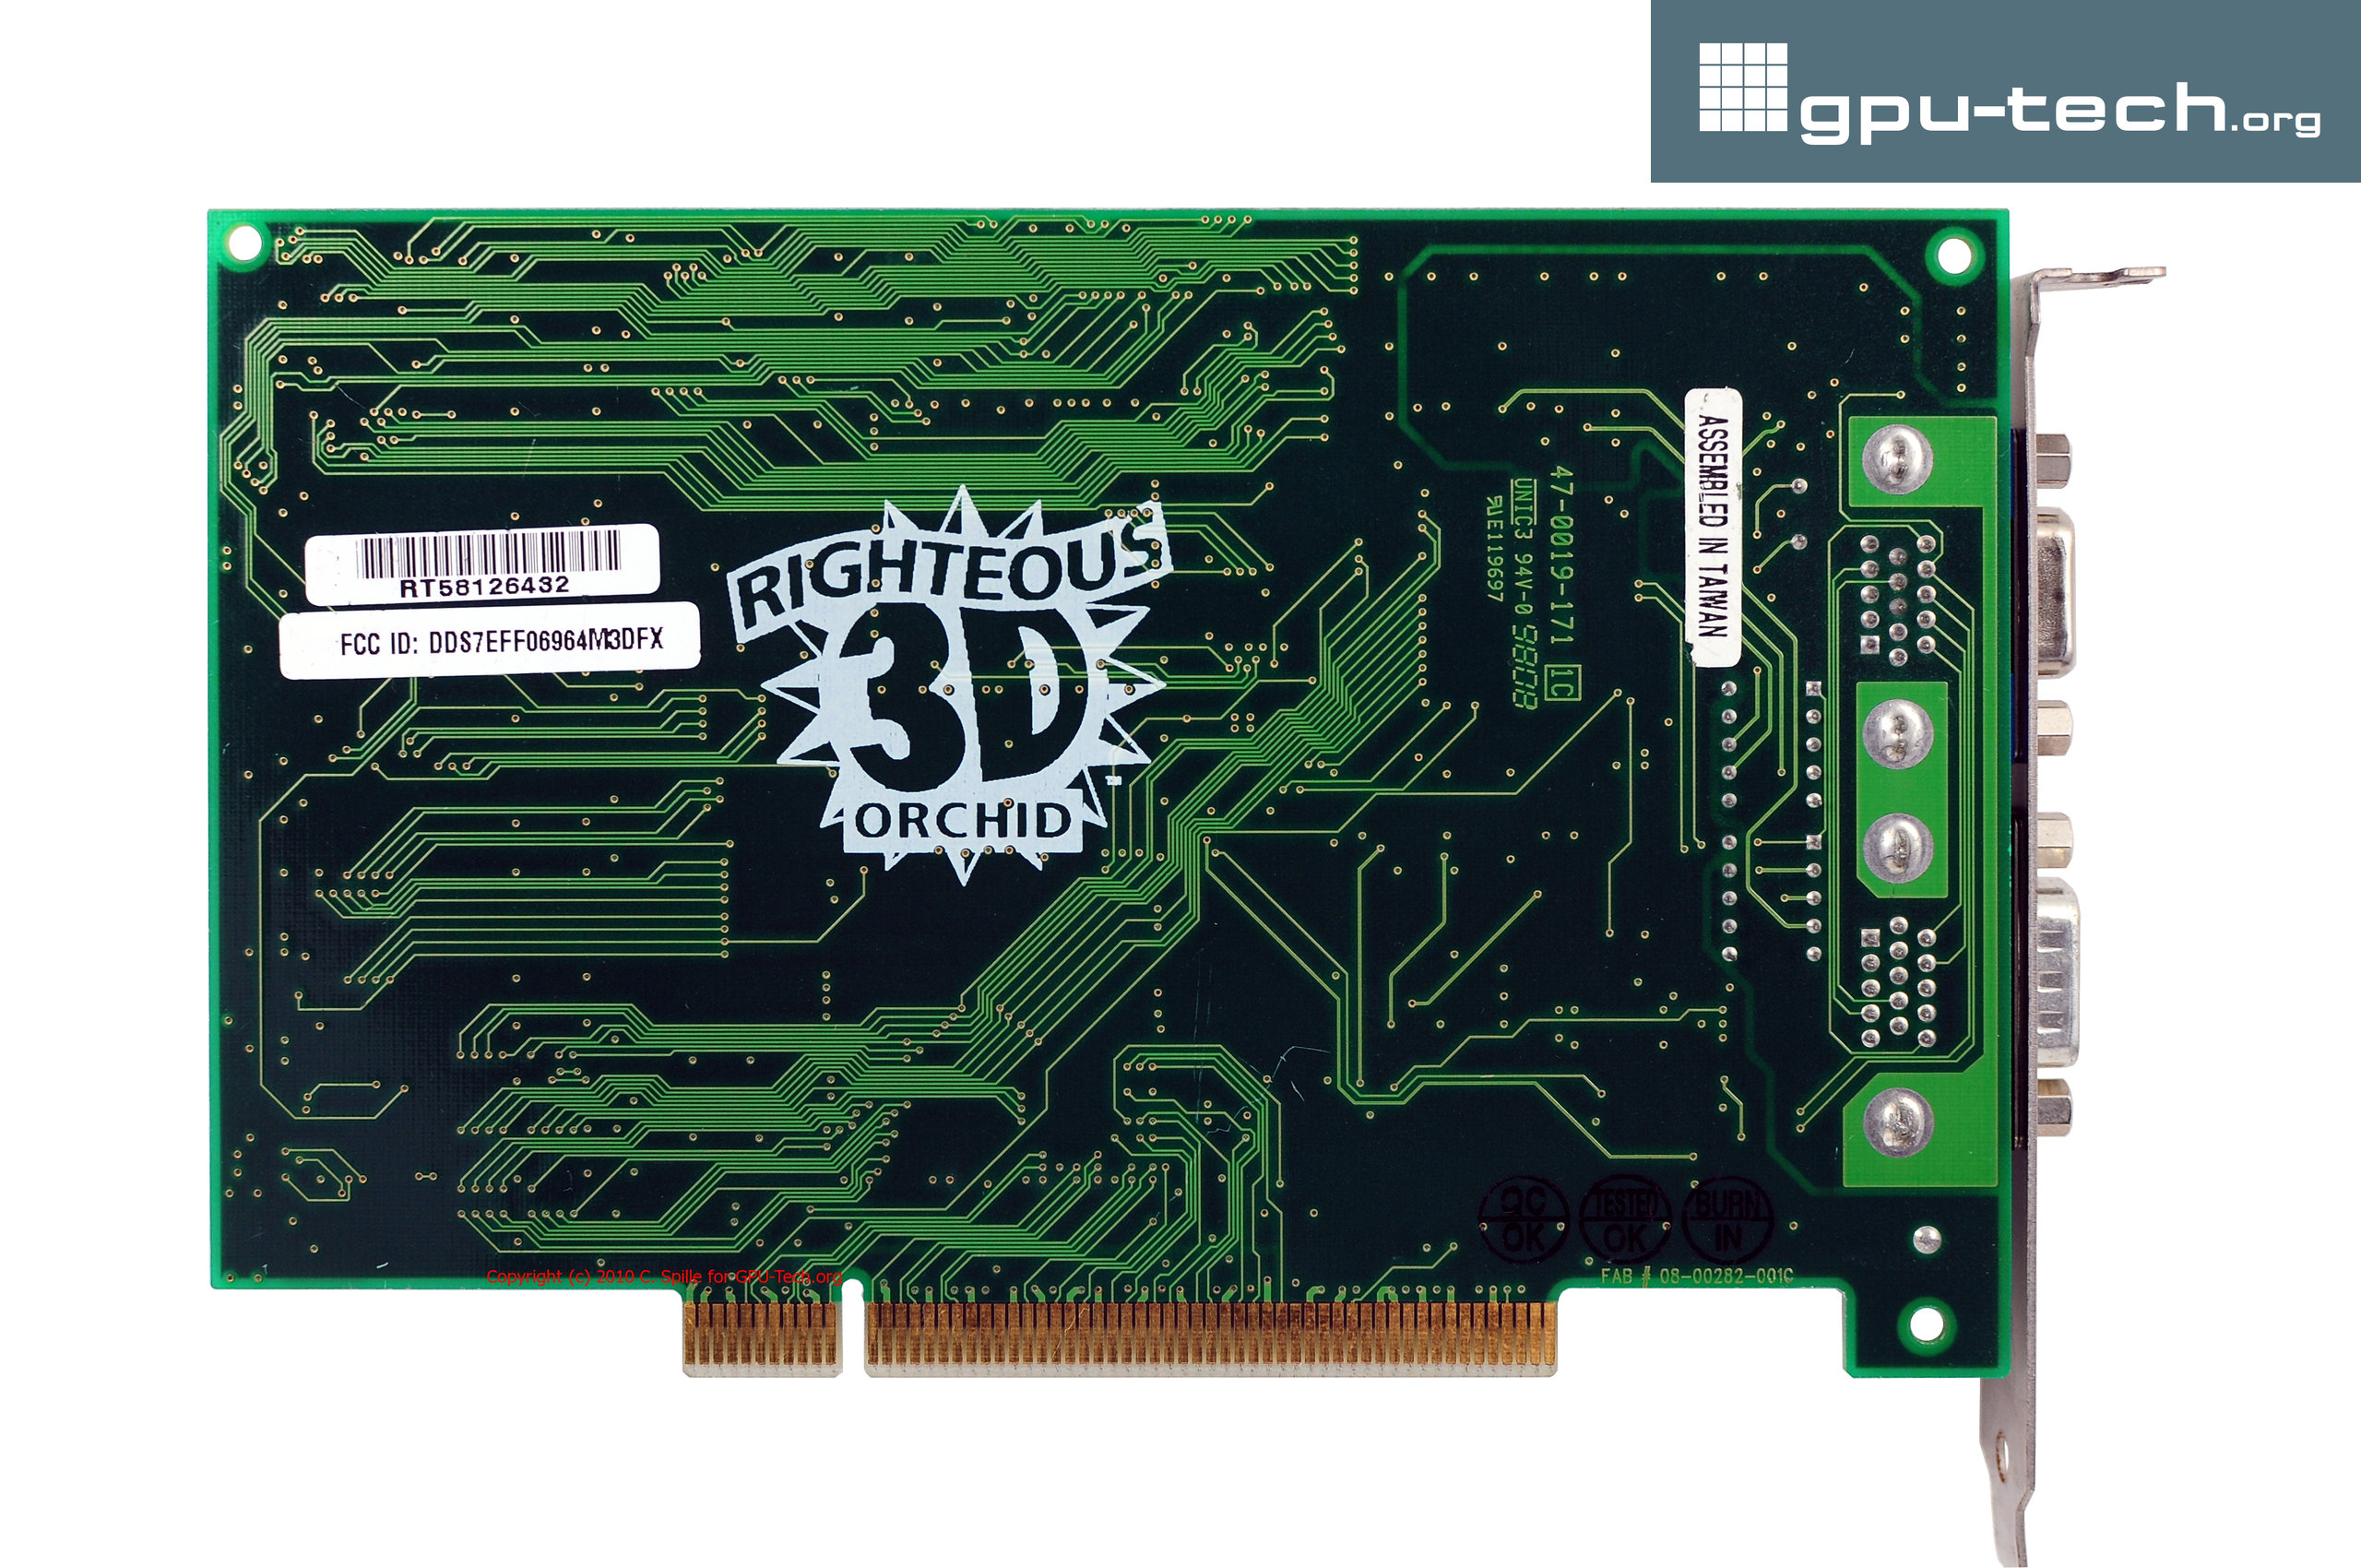 3Dfx Voodoo Graphics: Orchid Righteous 3D (back view)